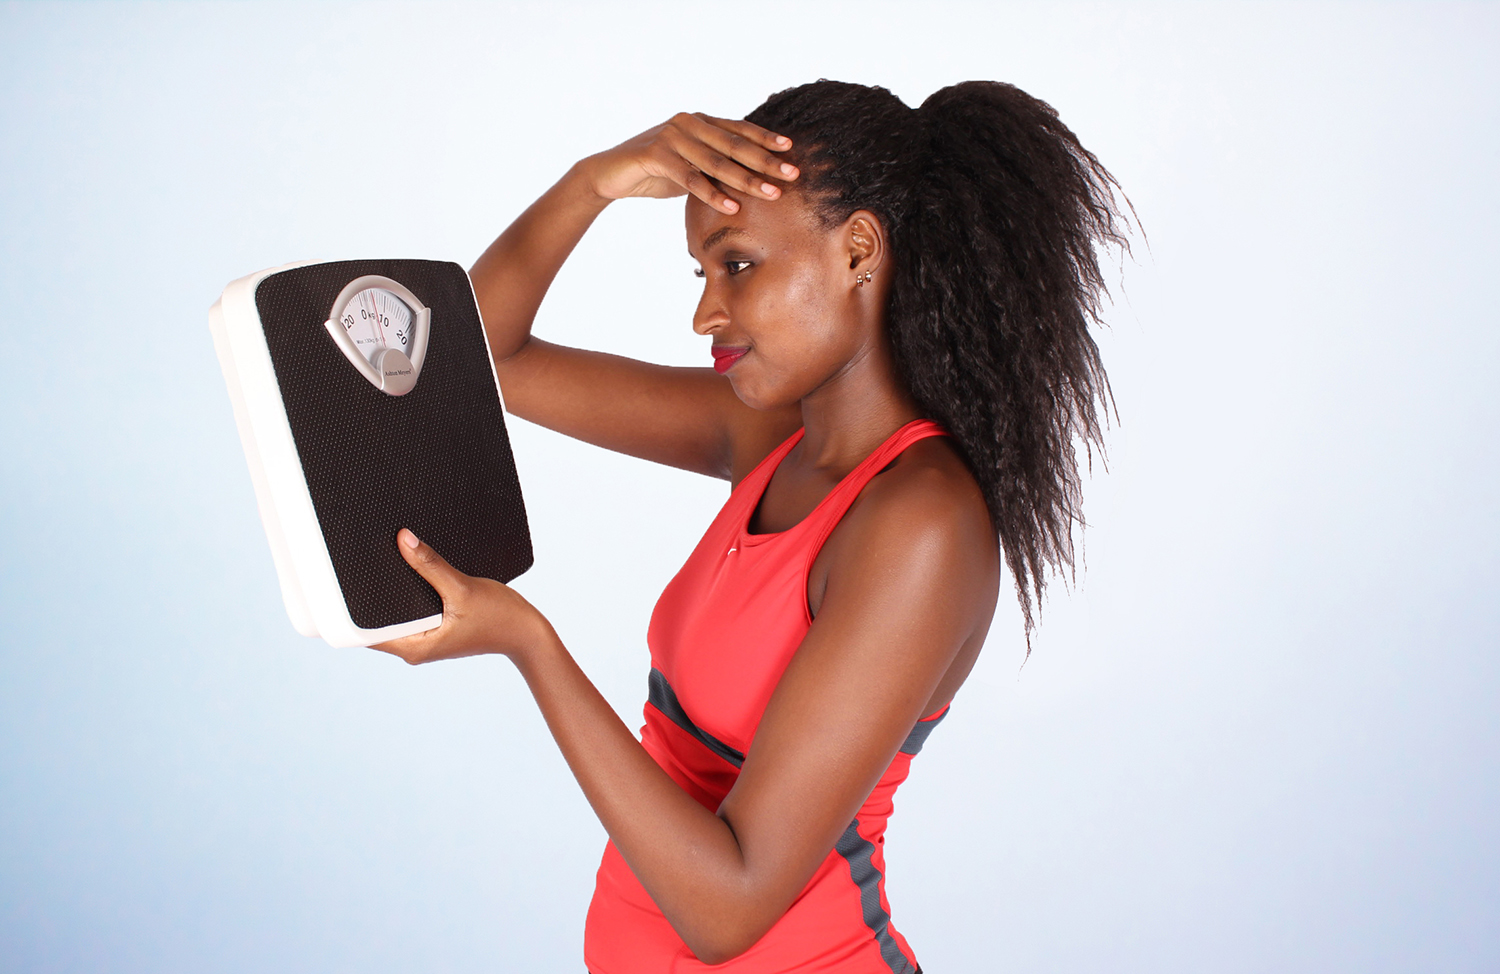 Frustrated woman looking at weight scale